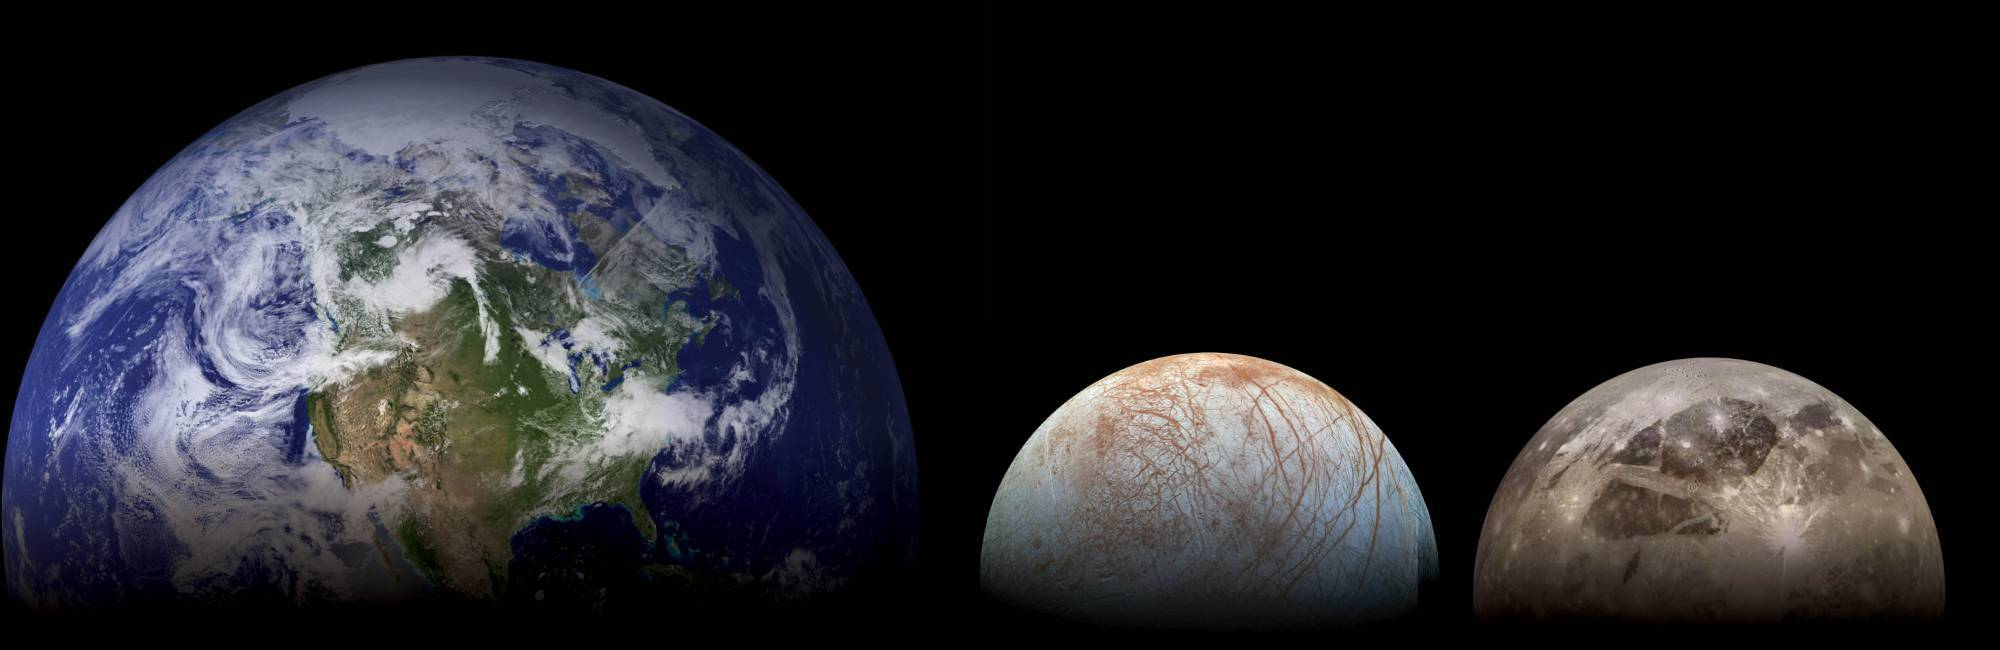 Earth, Europa and Ganymede, not to scale